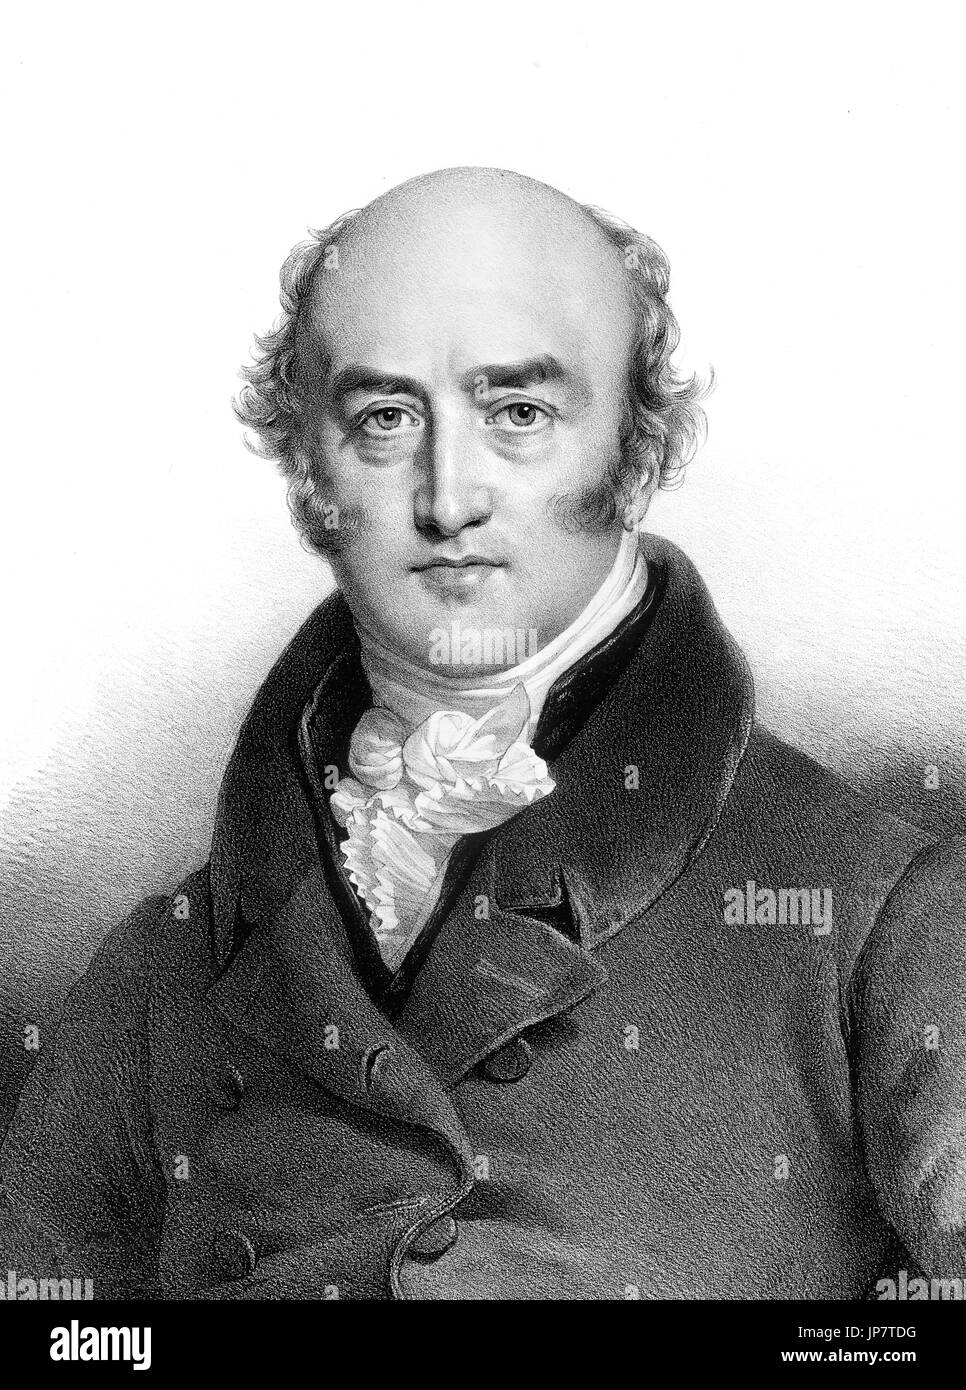 George Canning (1770-1827), portrait of the shortest serving British Prime Minister . Lithograph by Charles Etienne Pierre Motte, from a painting by Henri Grevedon, 1827 - Stock Image